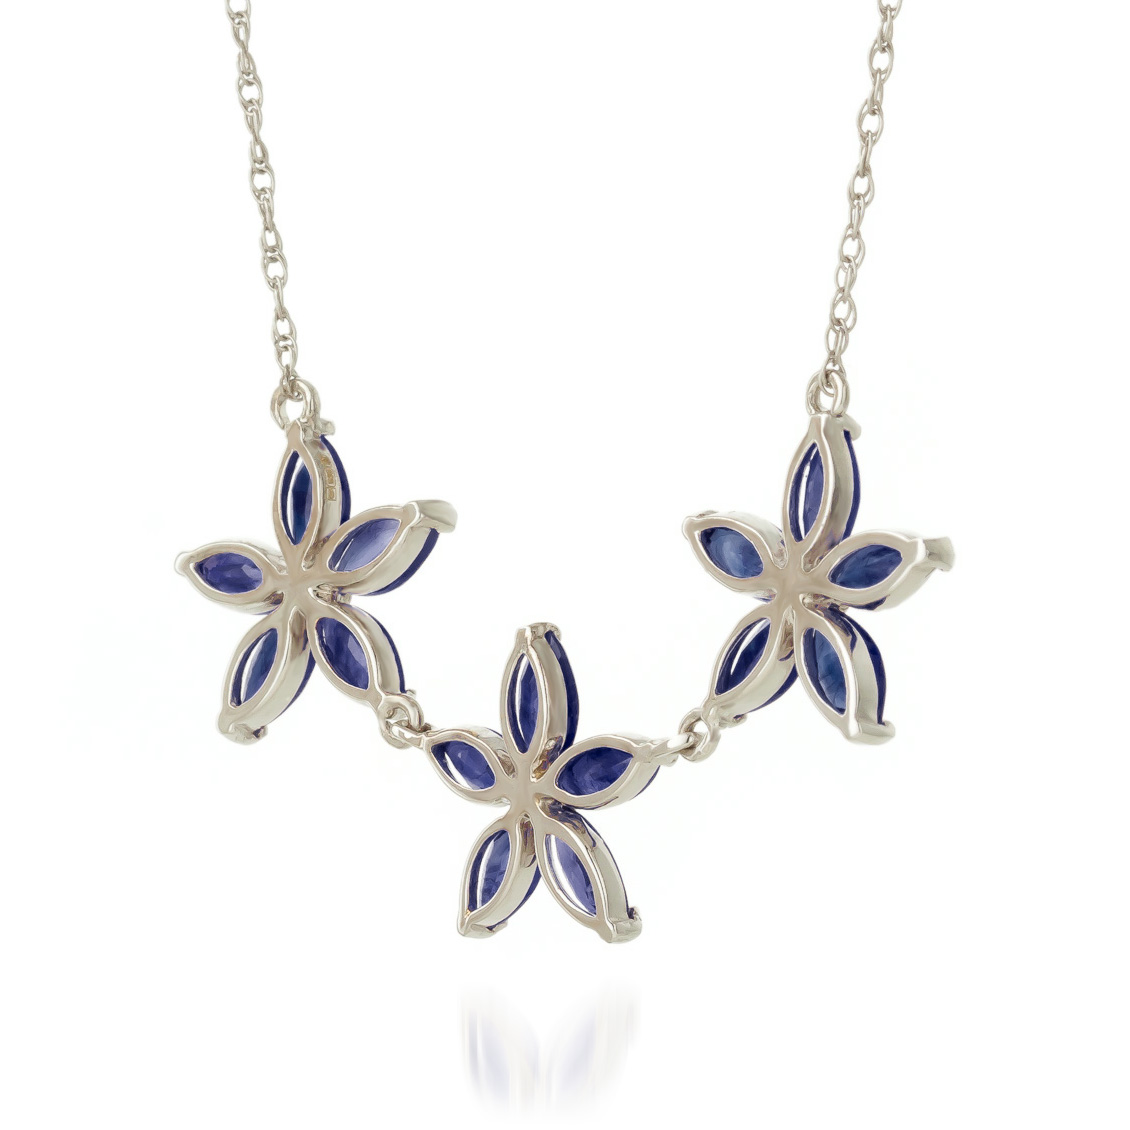 Marquise Cut Sapphire Pendant Necklace 5.0ct in 9ct White Gold